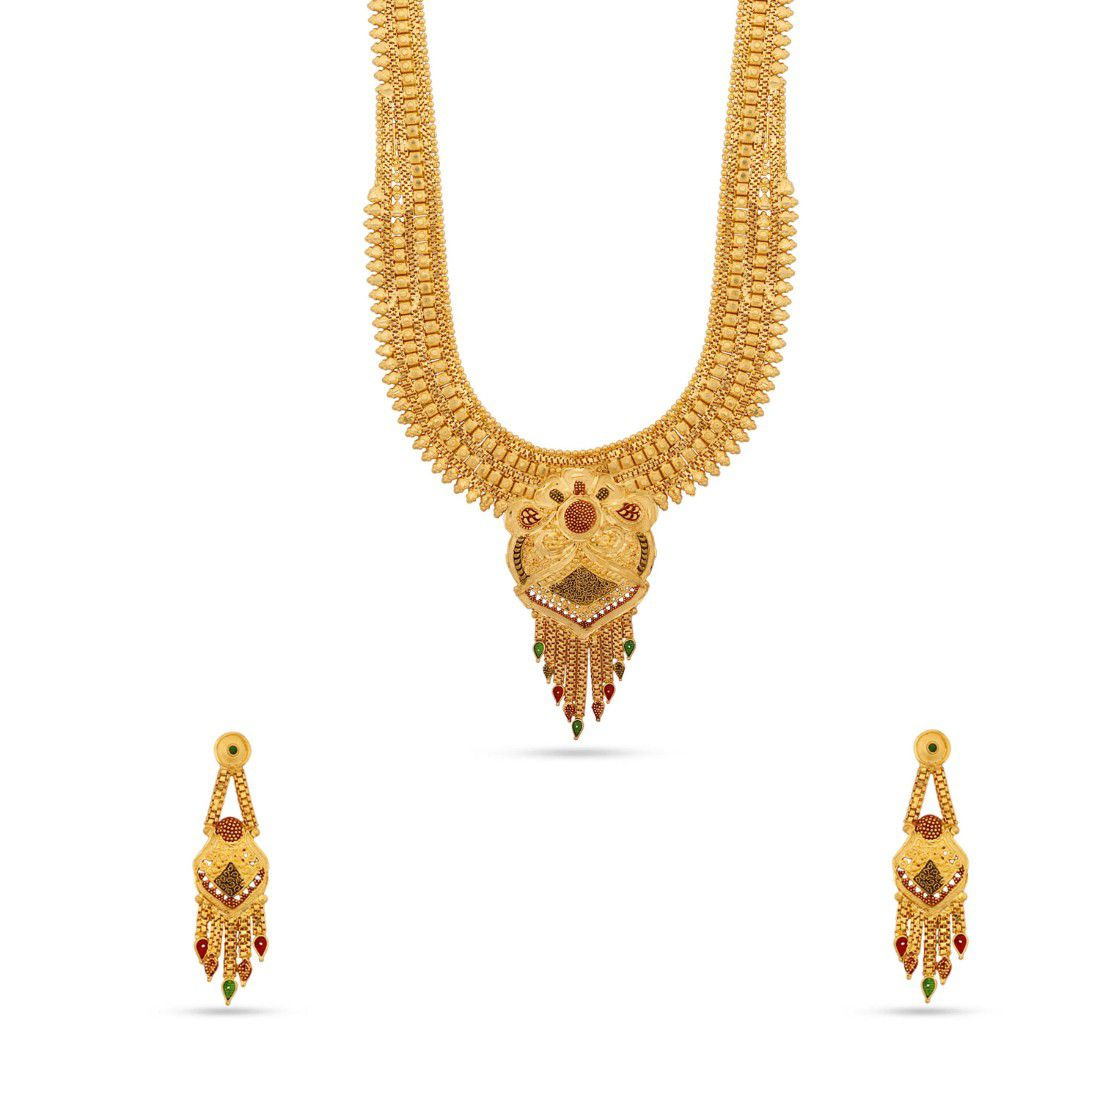 Jewlot Gold Plated Necklace Set for Women and Girls